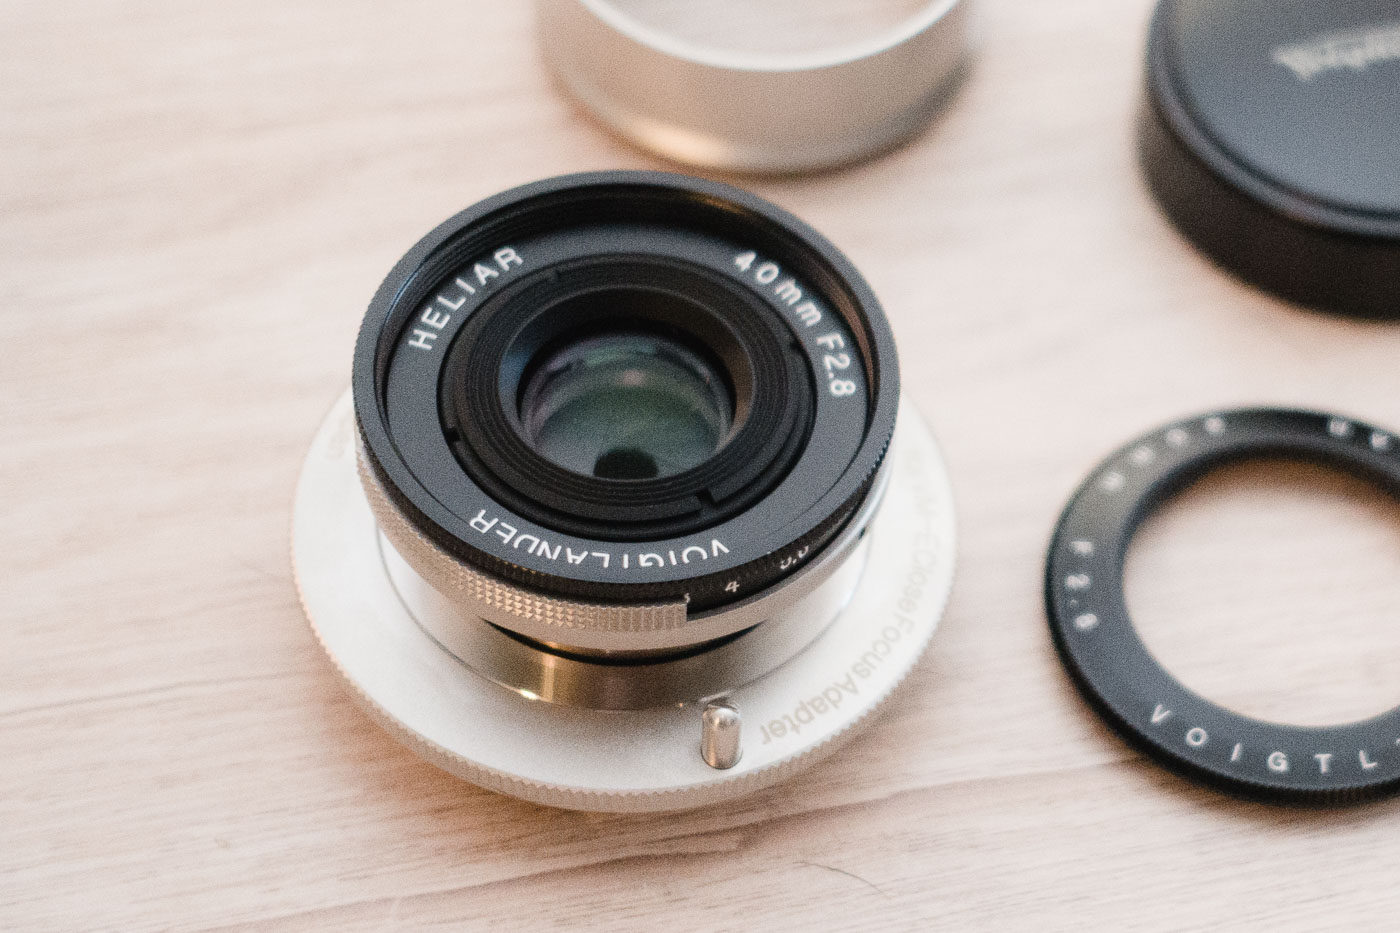 voigtlander-40mm-heliar-lens-review-1-2